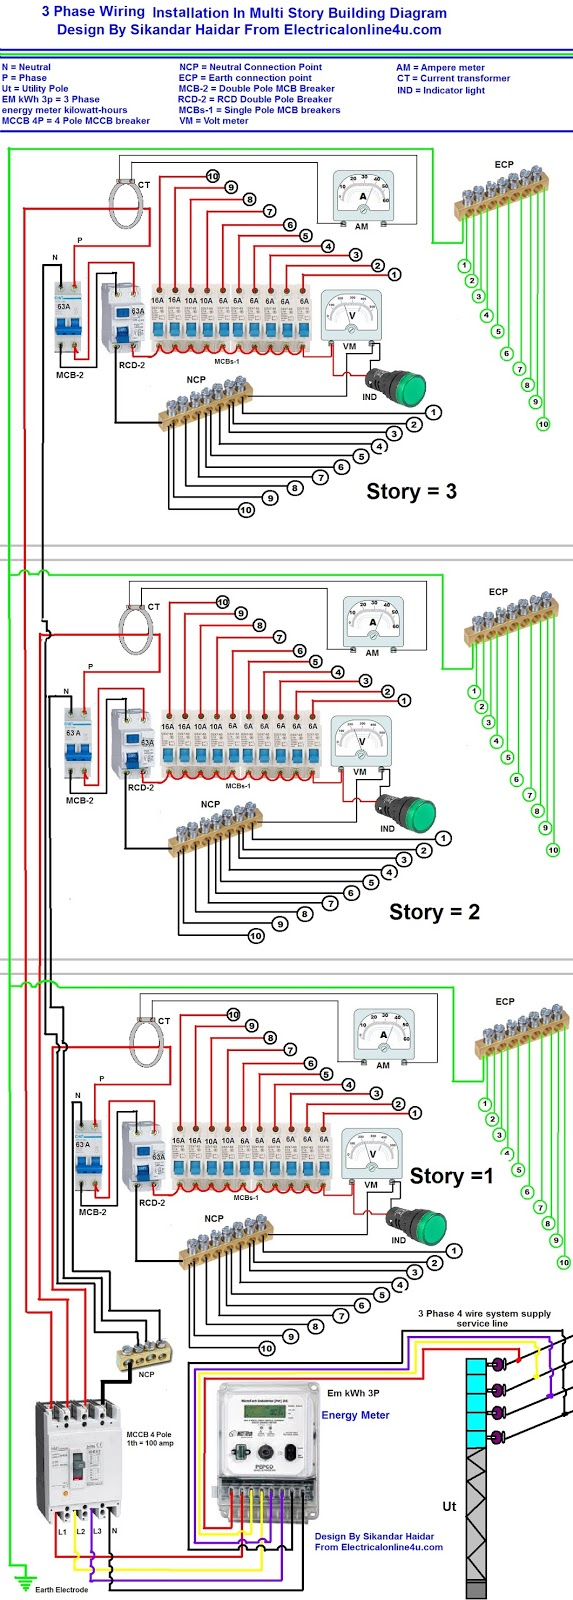 simple electrical wiring diagram for home wig wag lights in urdu schematic today basic house data circuits